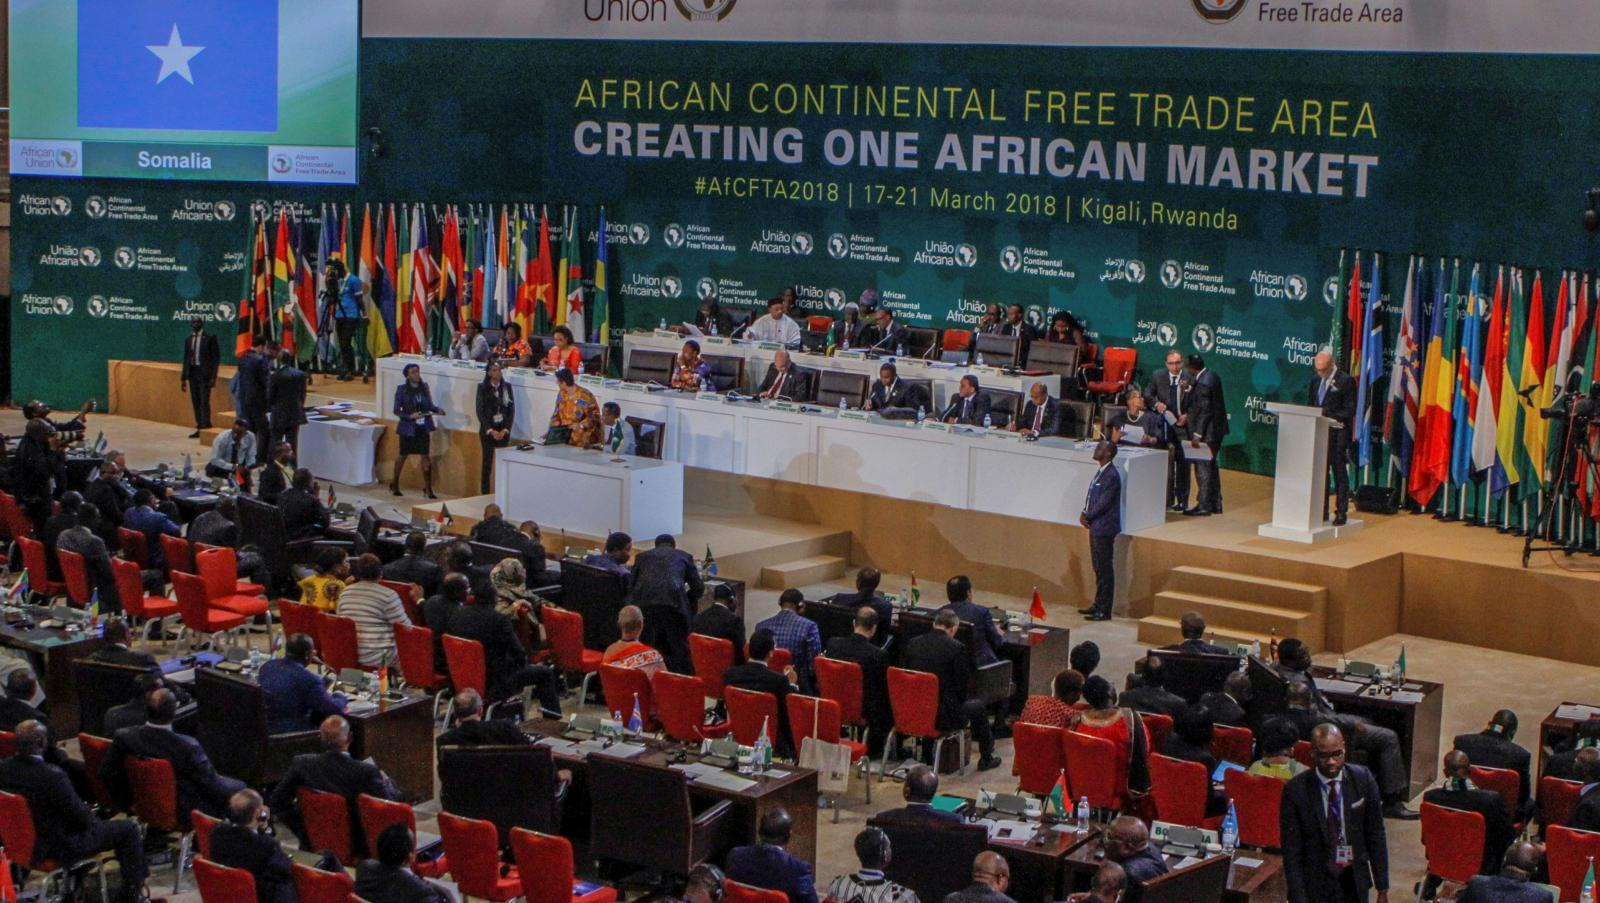 Africa Head of States AfCFTA - WIMS Talk